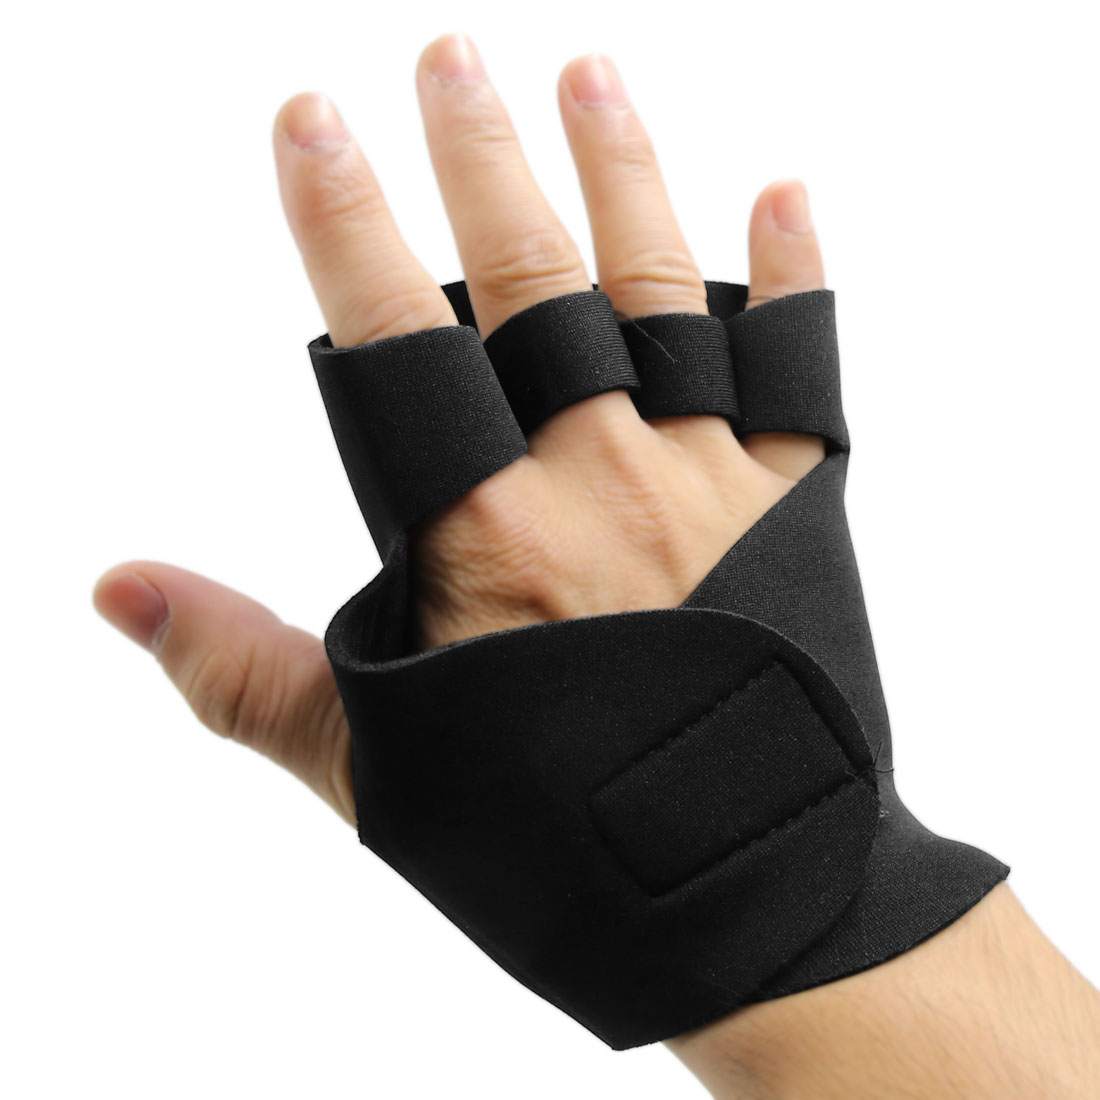 1 Pair Outdoor Training Workout Wrist Wrap Brace Elastic Protector Support Strap Glove Black - image 4 of 5